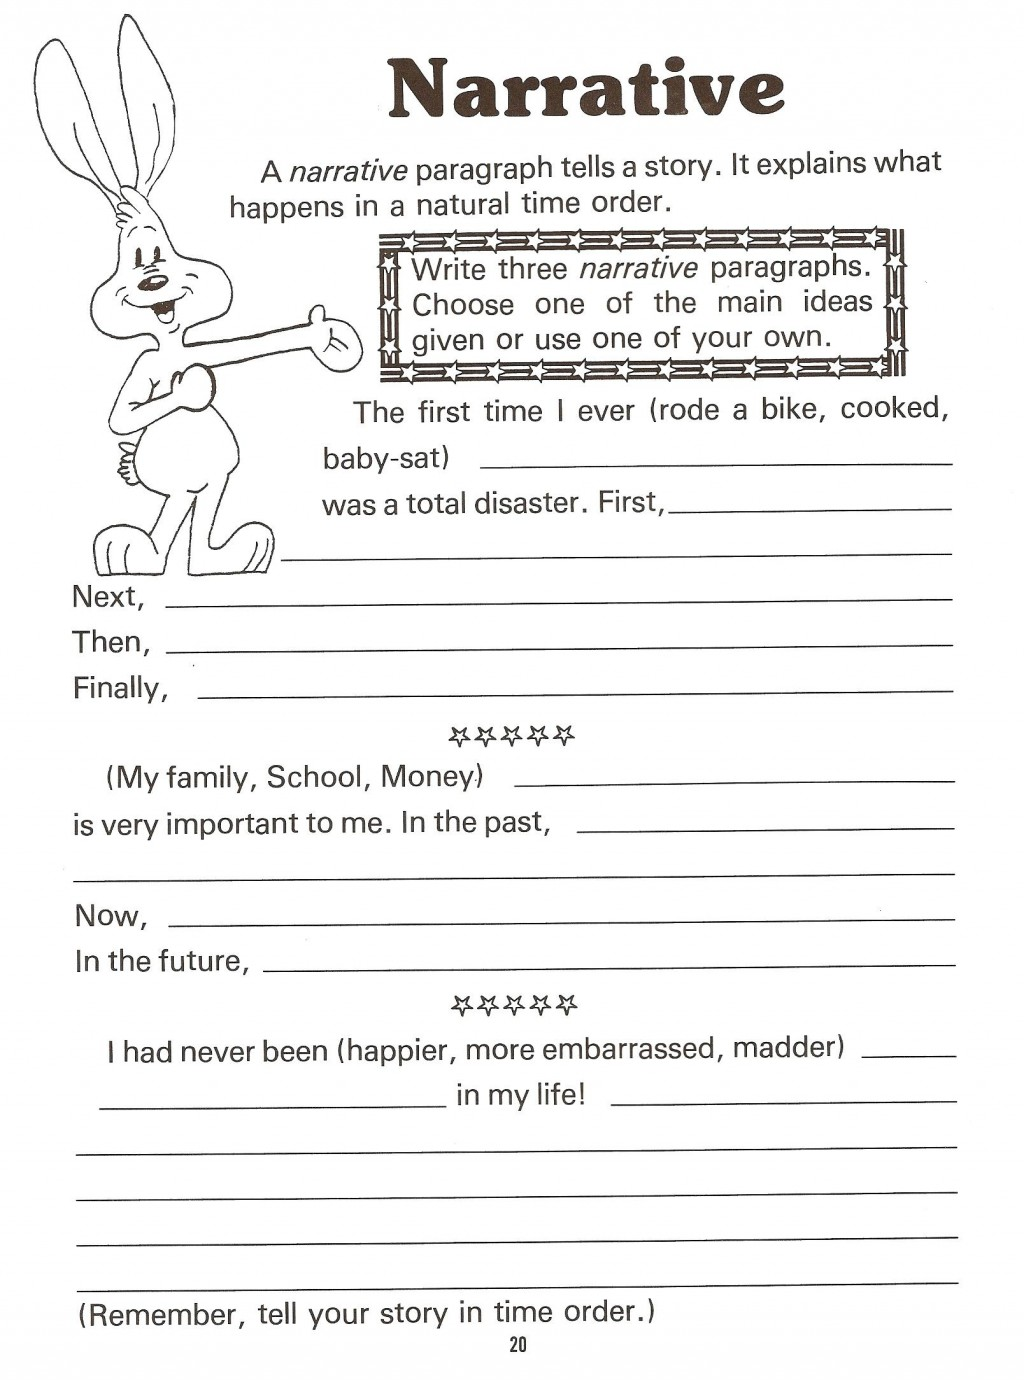 010 Essay Exampletive Topics For College Students Resume Writing Services In Credit Cart Terminal Paper Literacy Unforgettable Narrative Personal Ideas Large